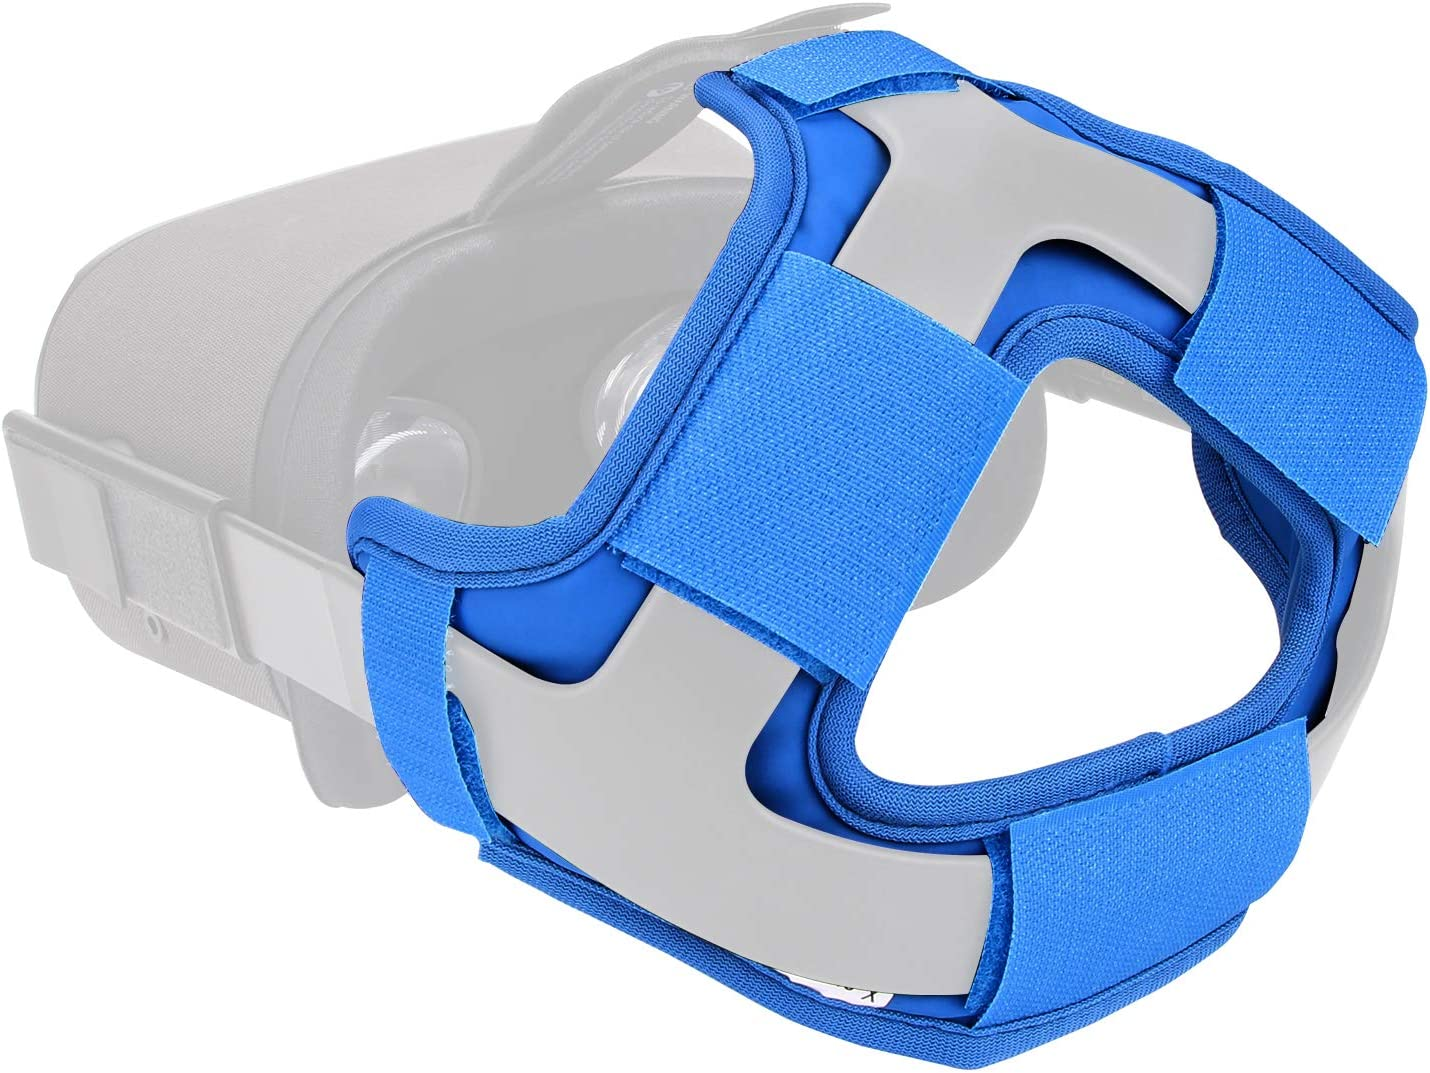 Head Strap Foam Pad for Oculus Quest - by X-super Home 2020 Pro Version VR Cover Acessories More Thick & Soft Headband Reduce Head Pressure (Blue, Head Strap Pad)